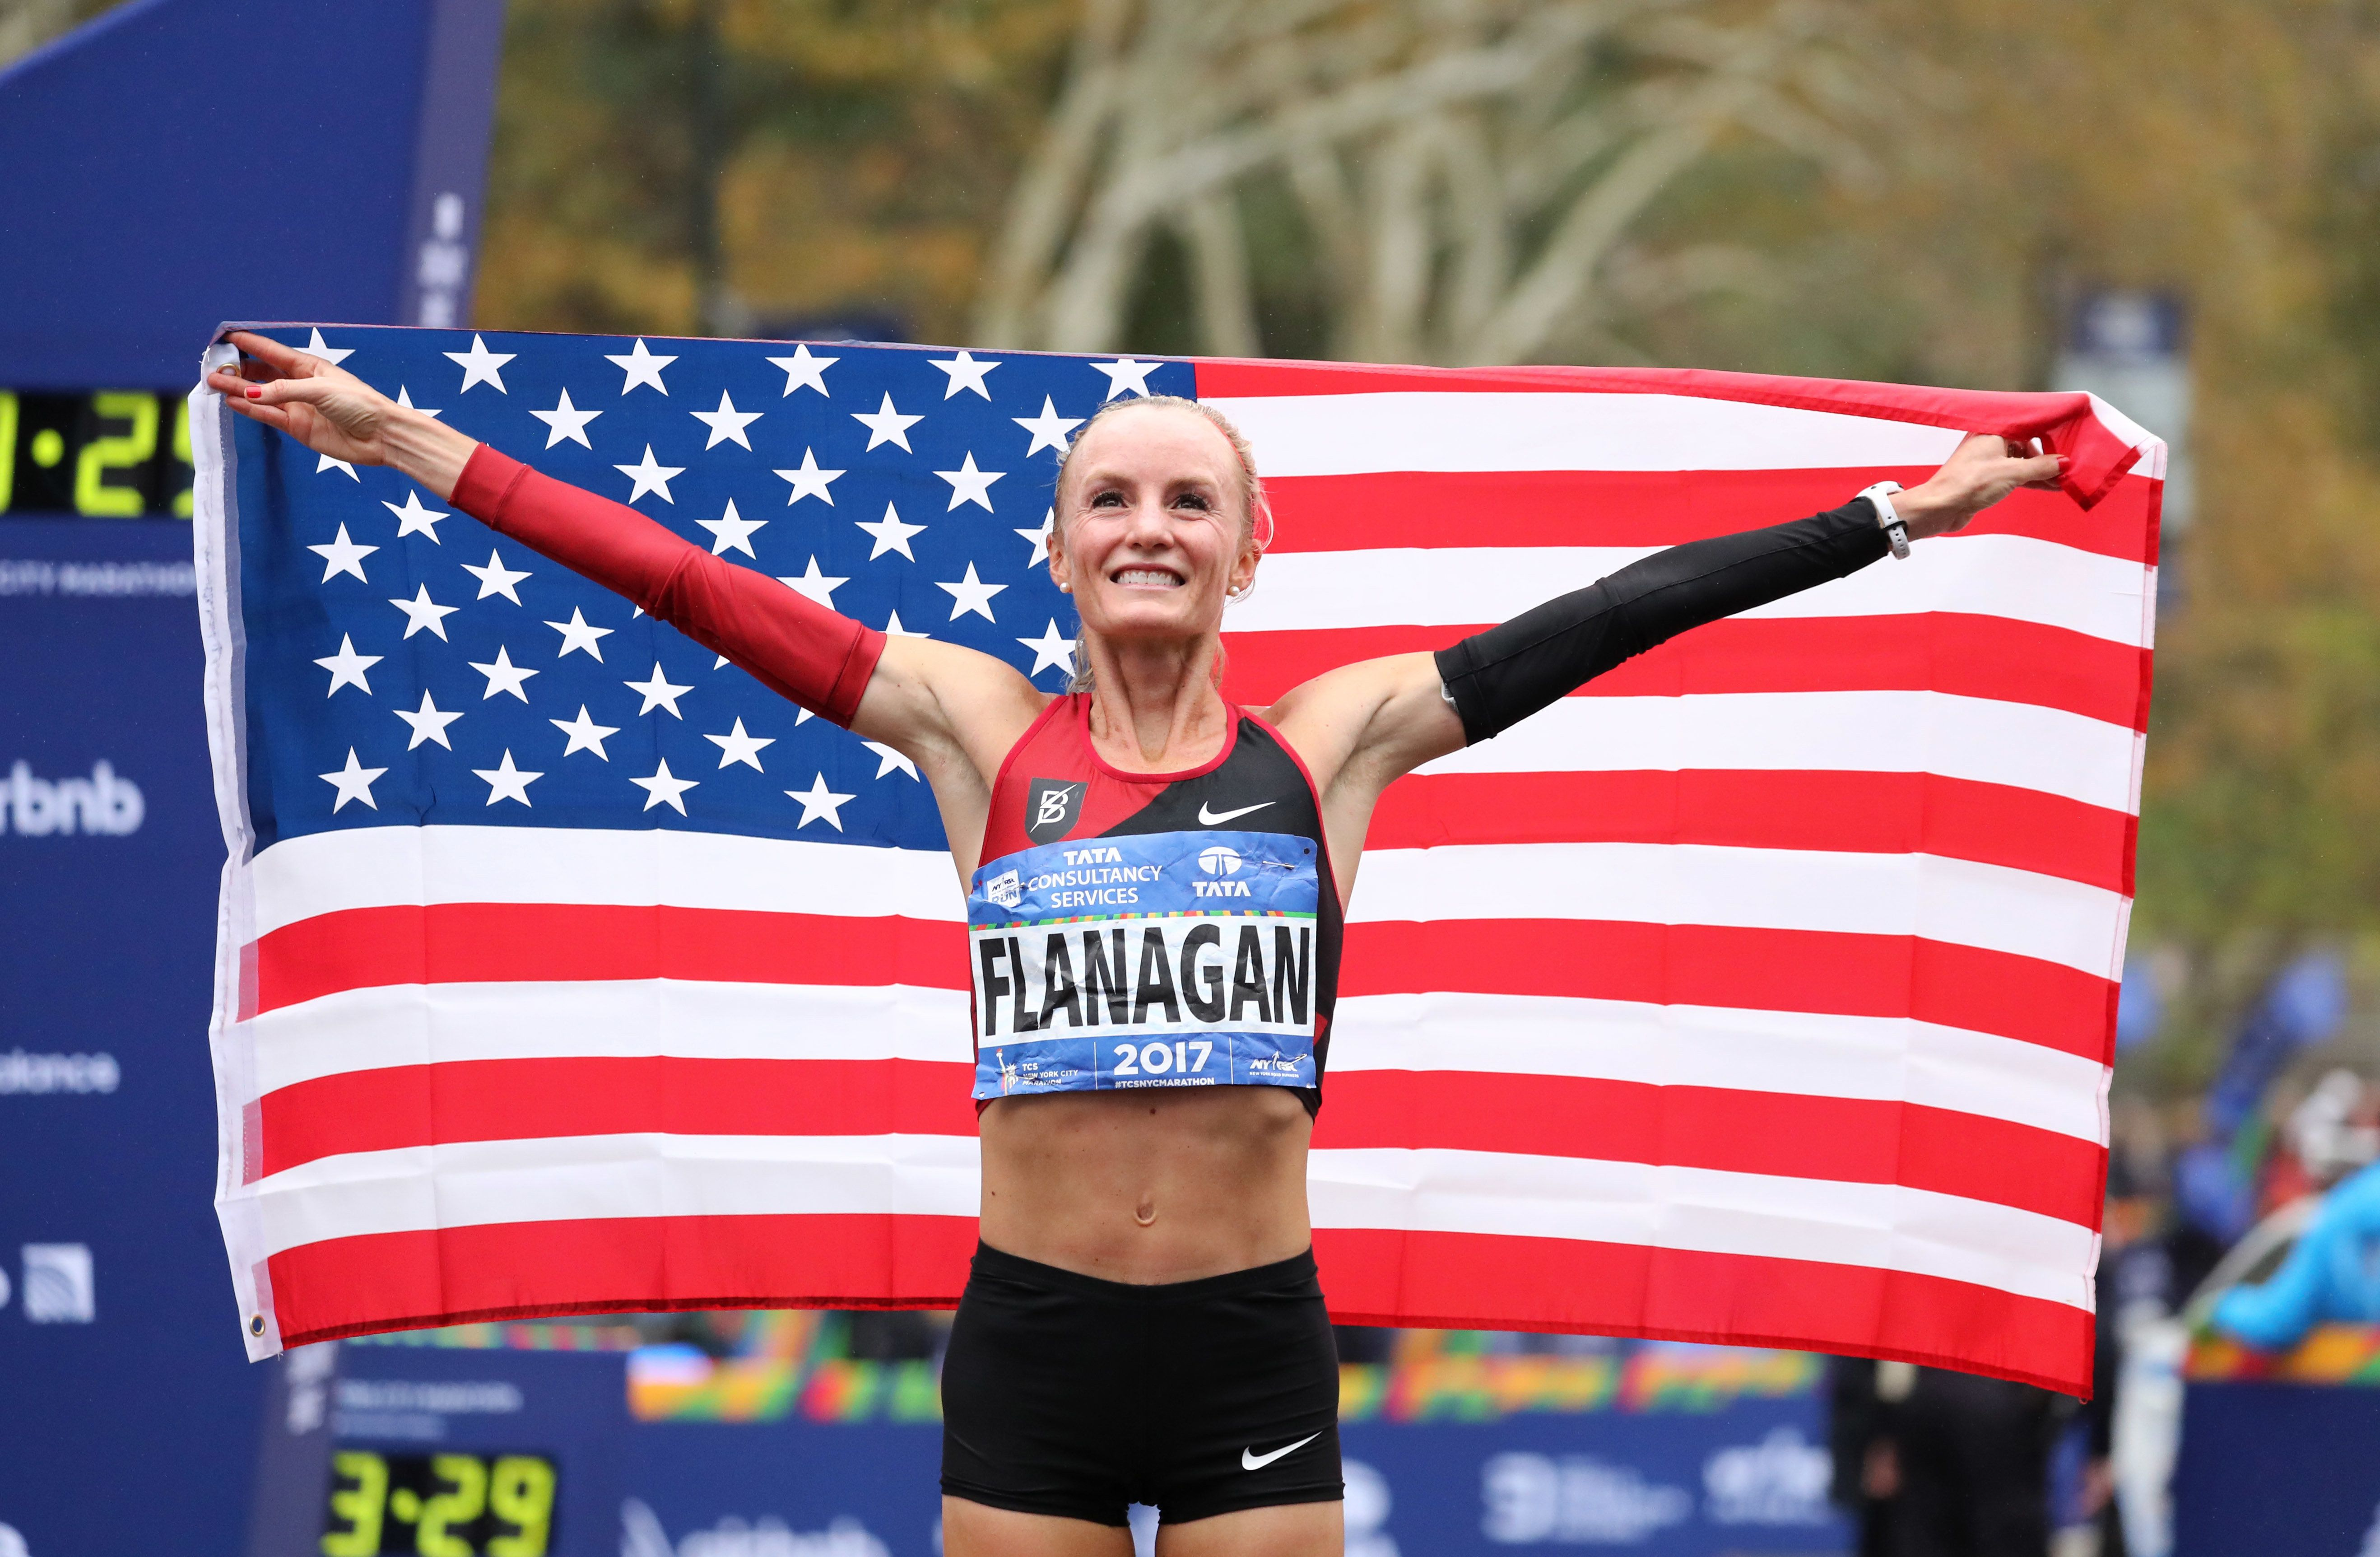 NEW YORK, NY - NOVEMBER 05:  Shalane Flanagan of the United States celebrates winning the Professional Women's Divisions during the 2017 TCS New York City Marathon in Central Park on November 5, 2017 in New York City. (Photo by Elsa/Getty Images)